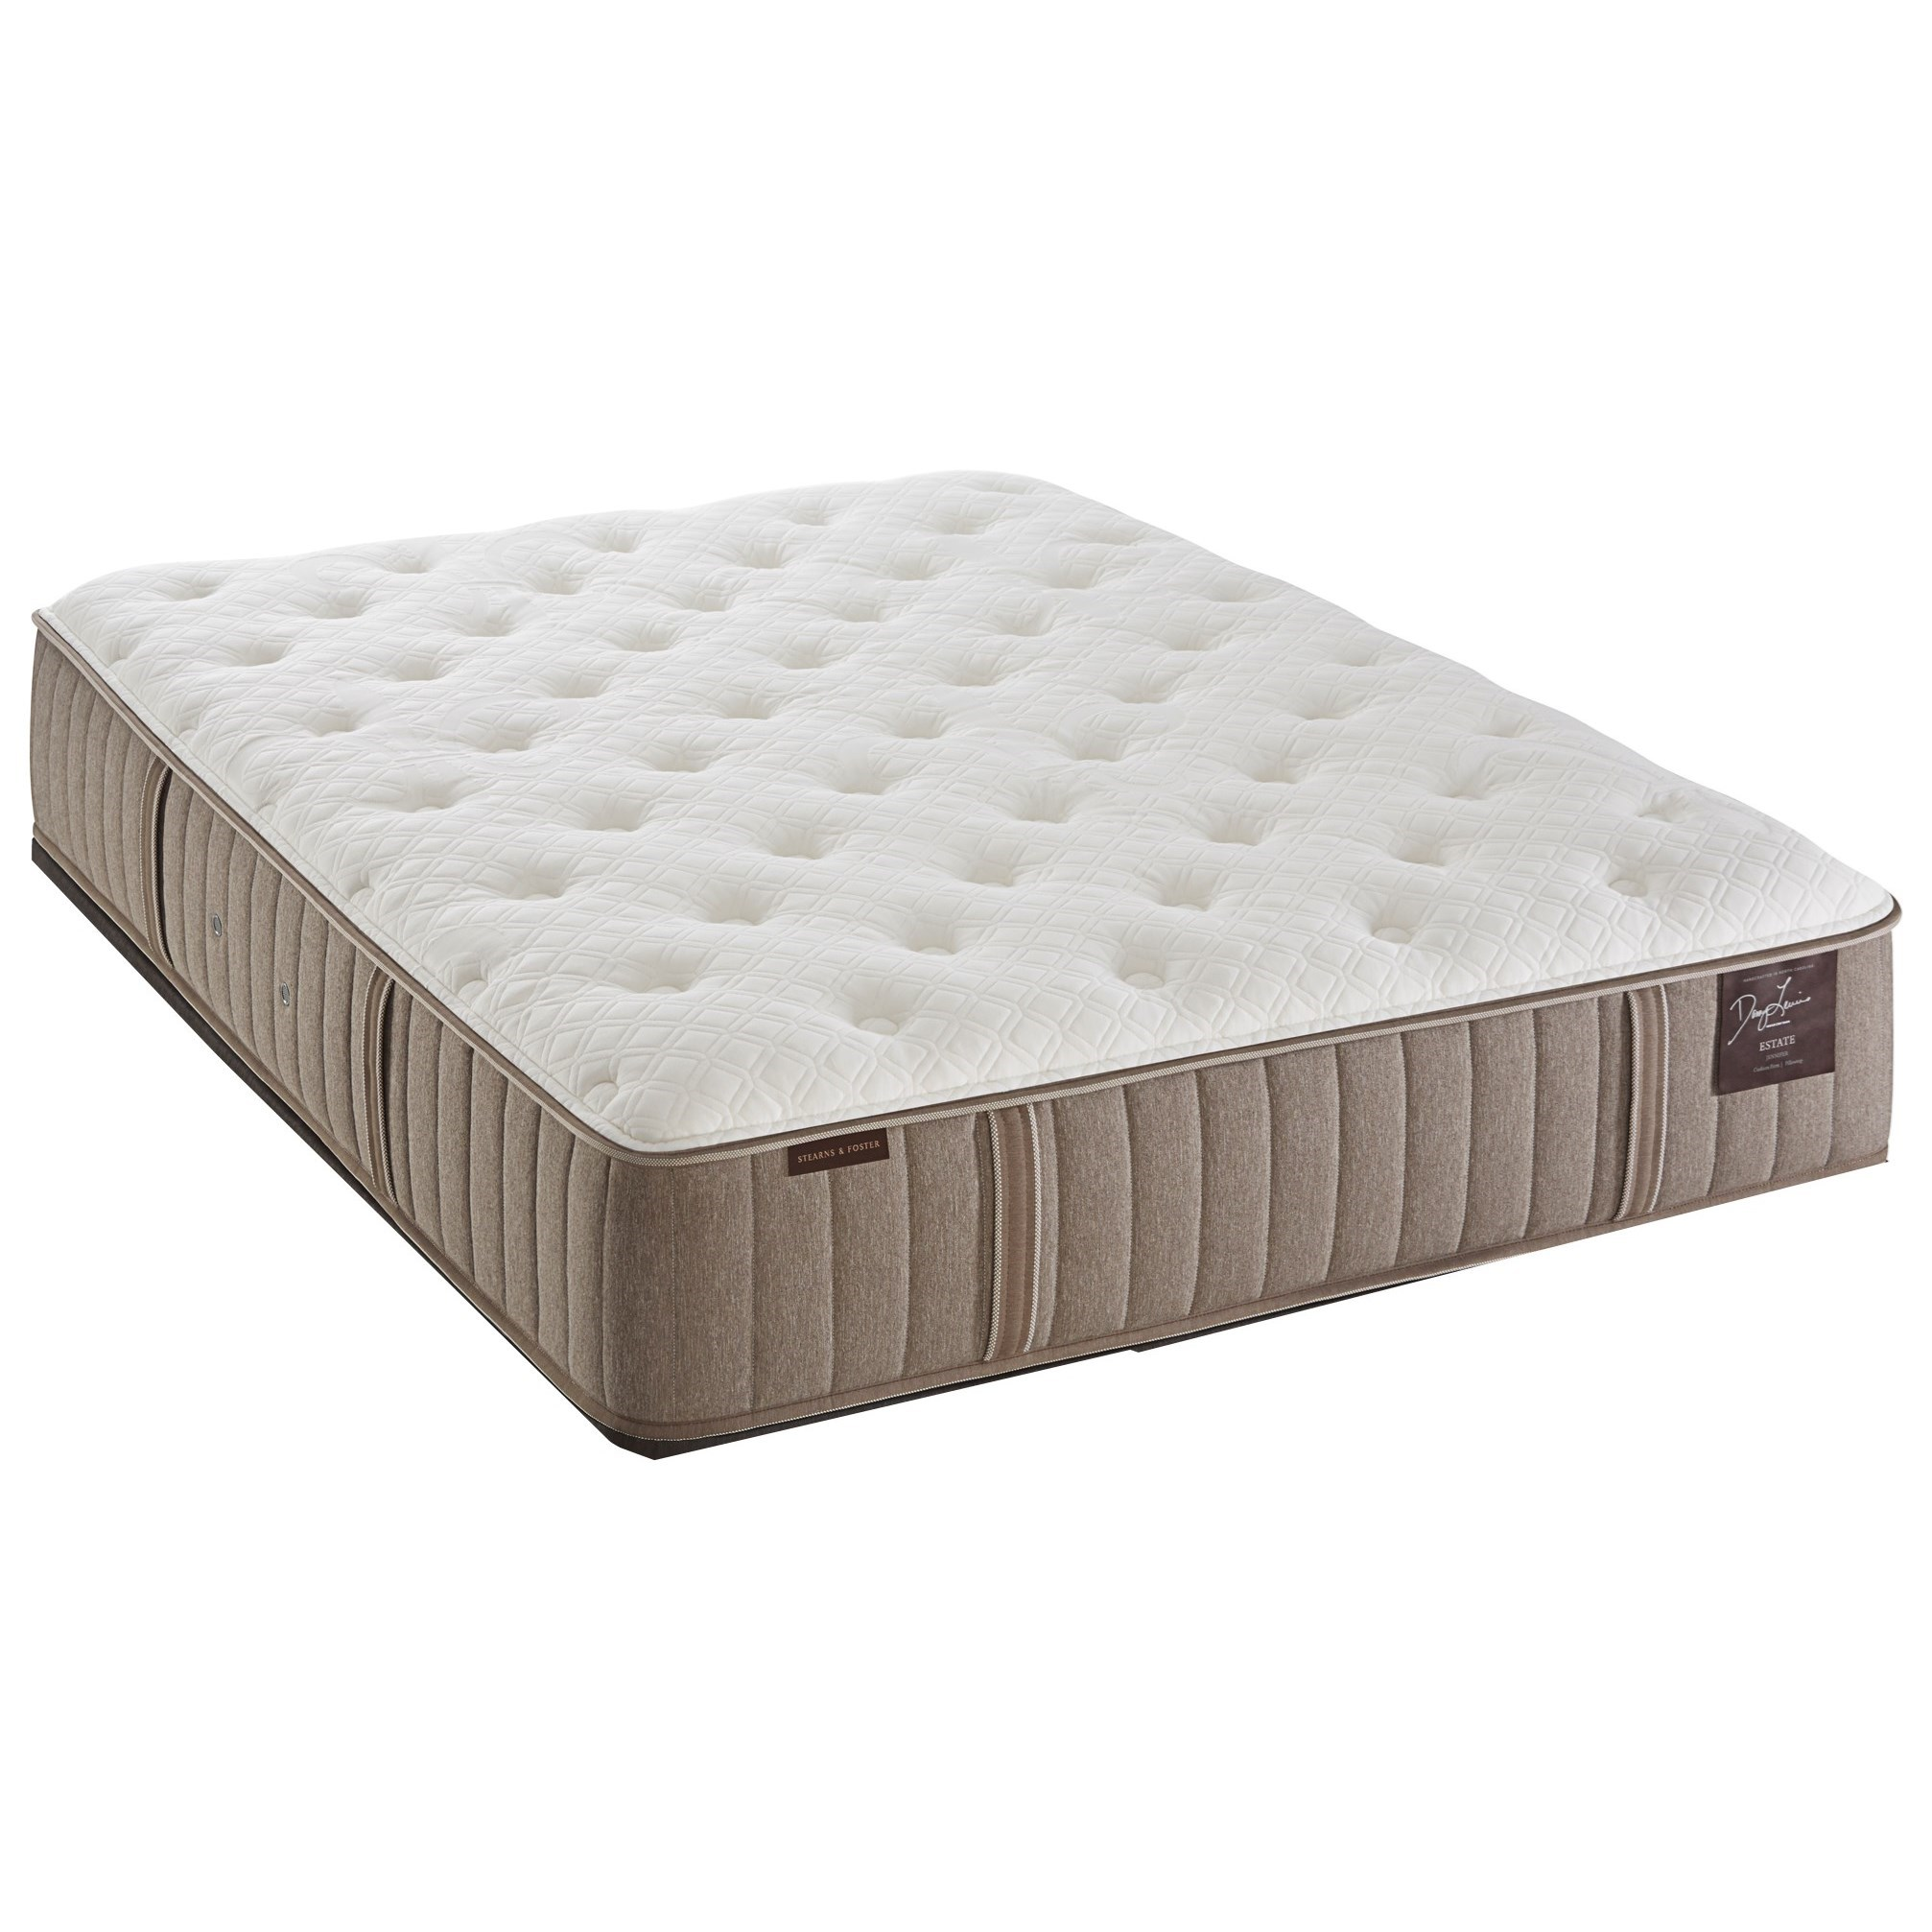 Stearns & Foster Scarborough King Plush Tight Top Mattress - Item Number: Plush-K